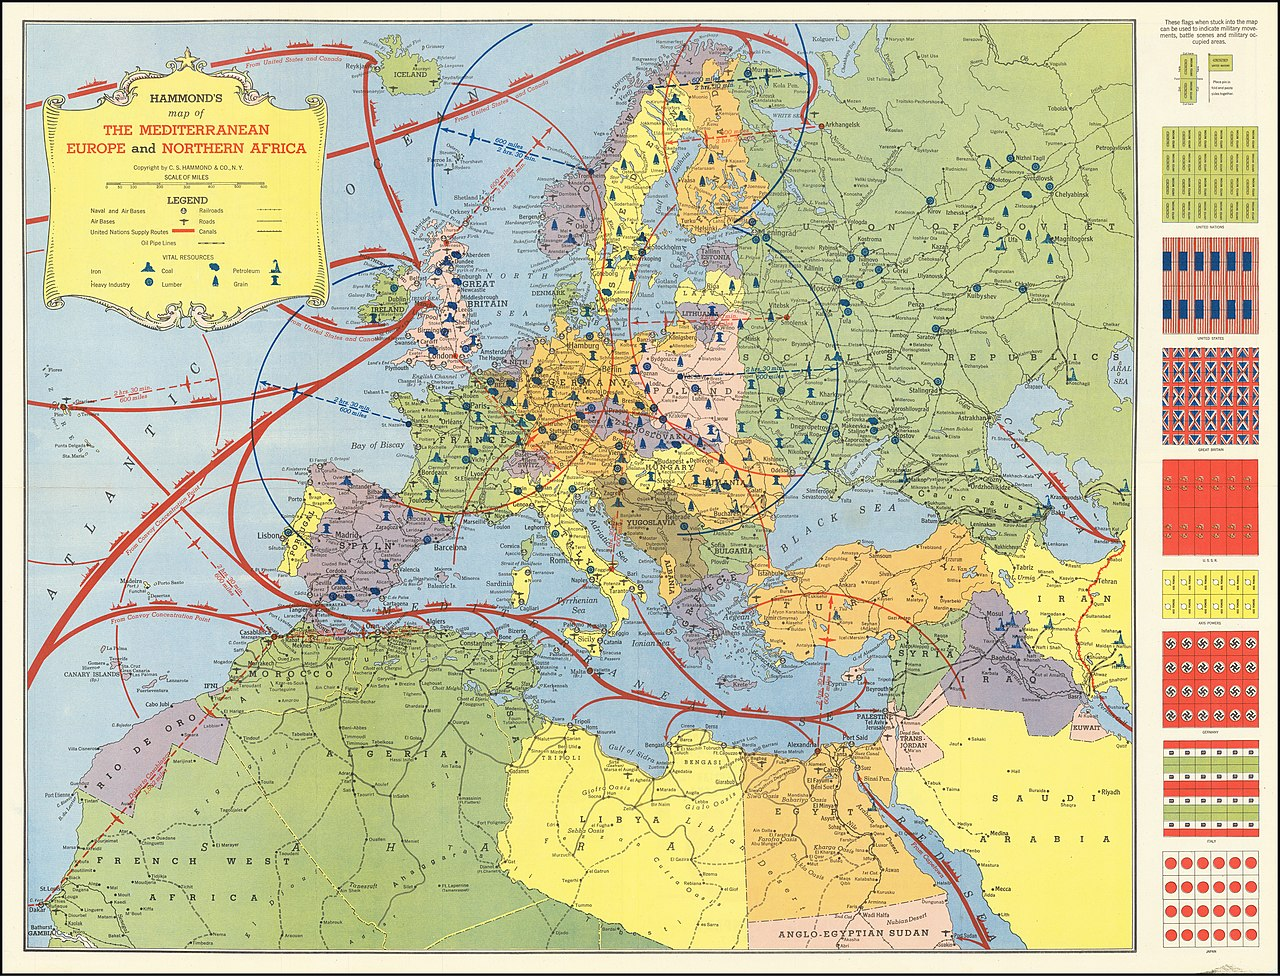 Picture of: File Hammond S Map Of The Mediterranean Europe And Northern Africa Jpg Wikimedia Commons